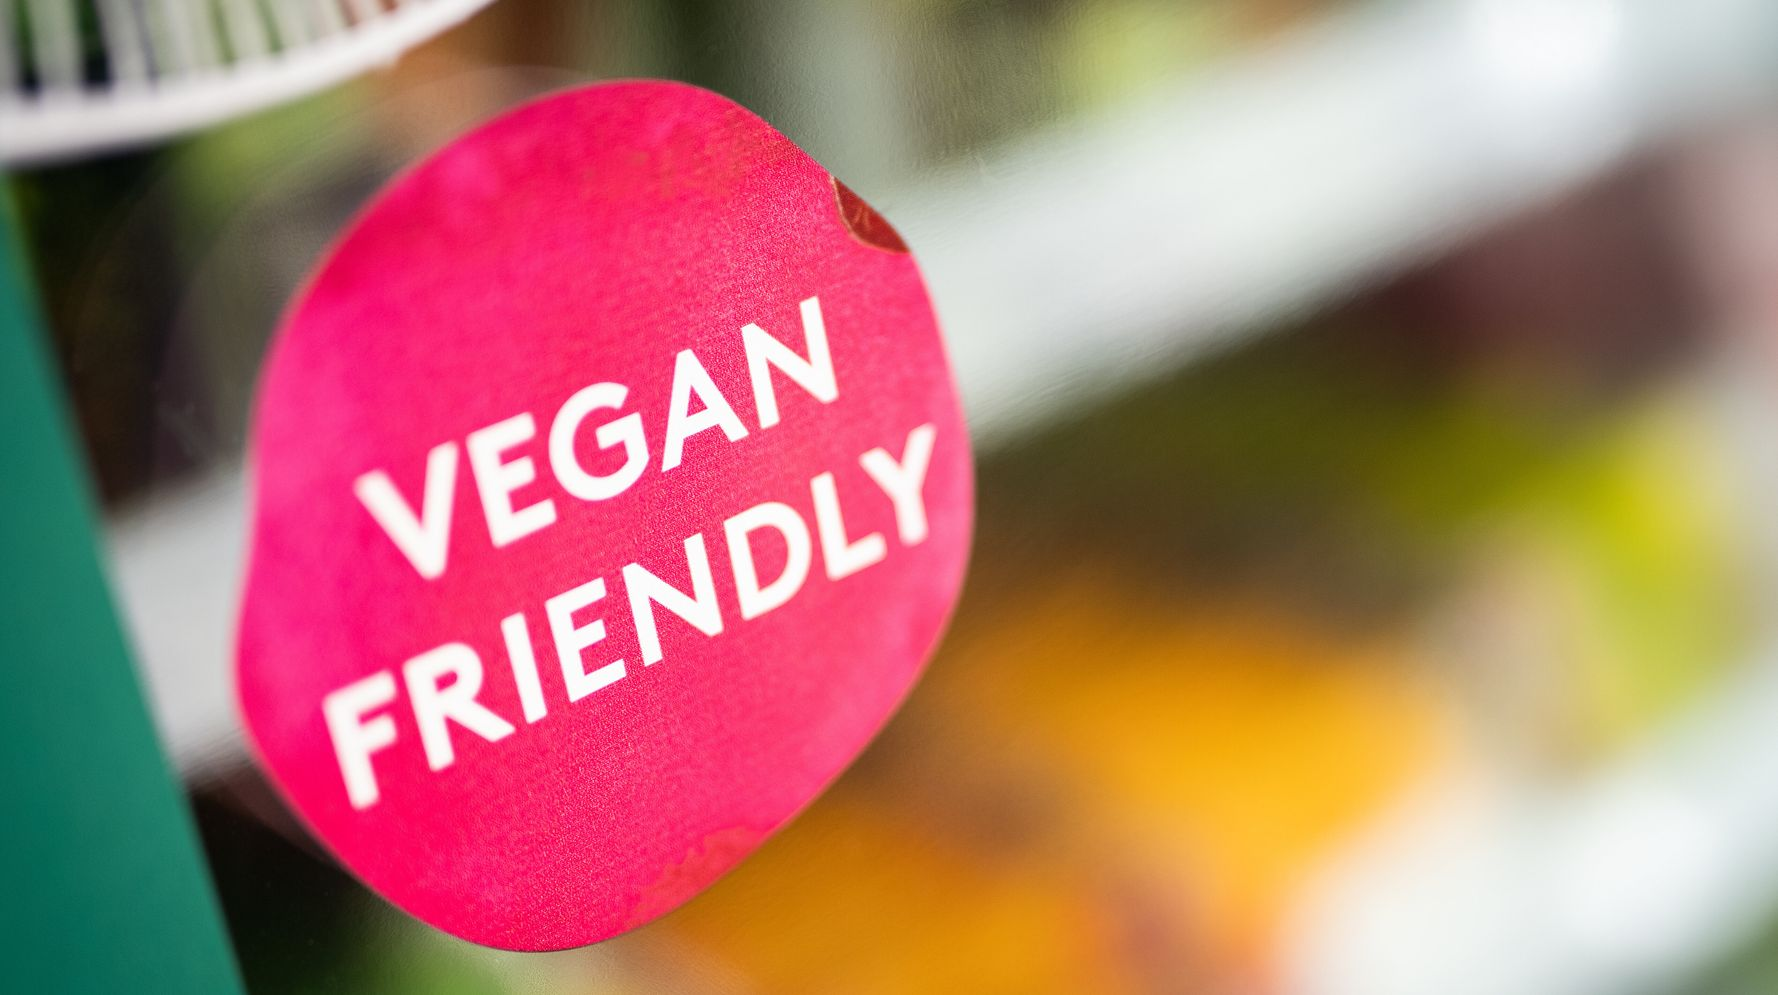 Socialist-Themed Vegan Food Company Lays Off Workers Without Notice Or Severance